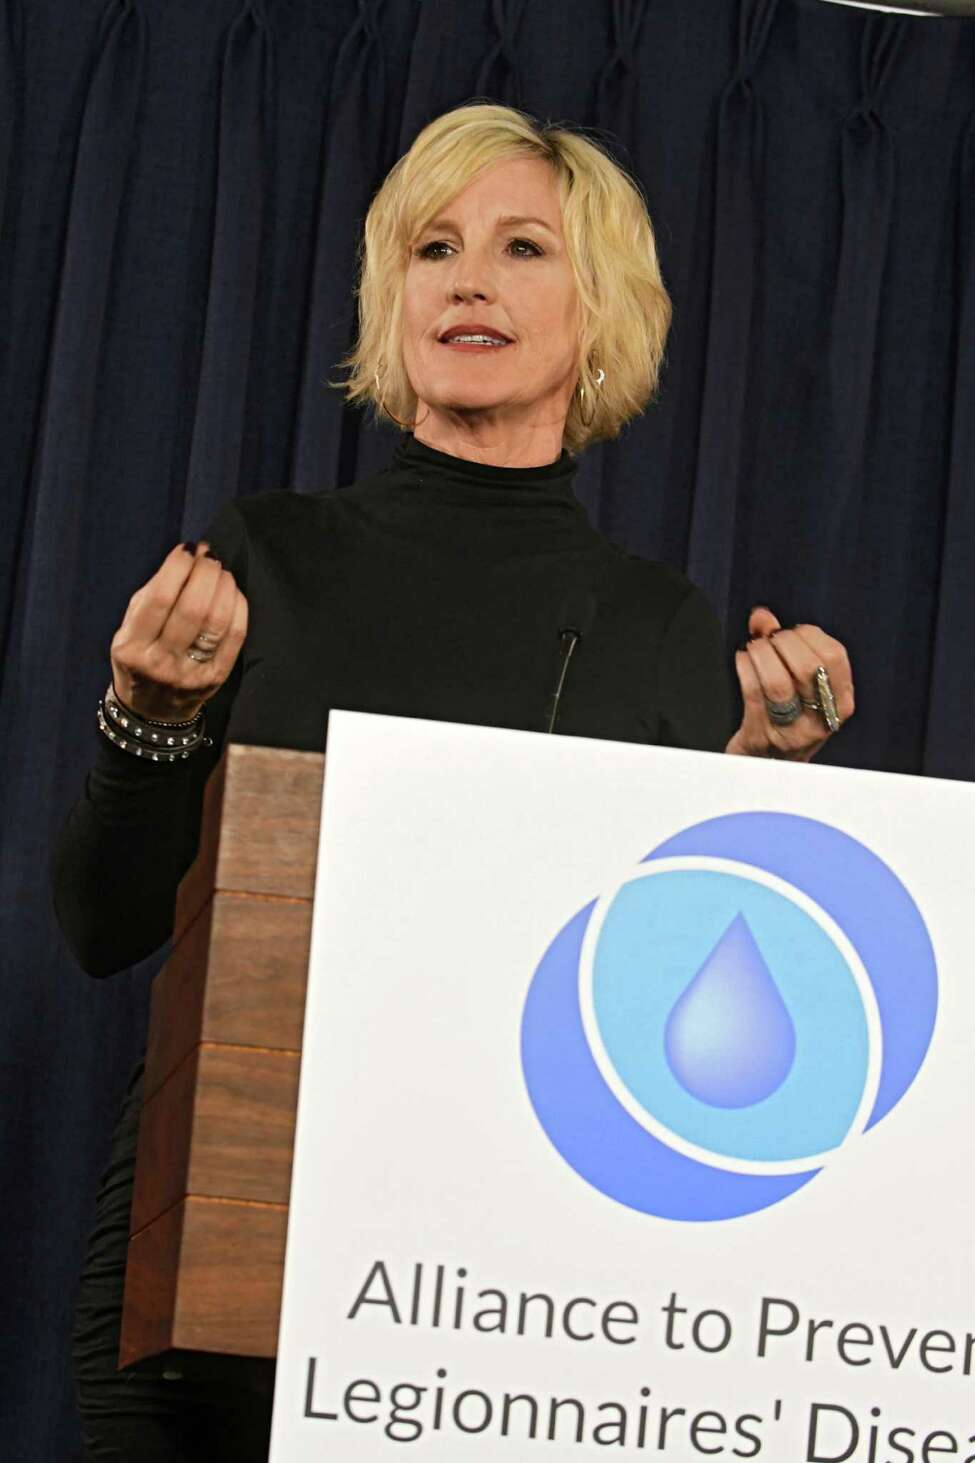 Public health and environmental advocate Erin Brockovich joins the Alliance to Prevent Legionnaires' Disease and the Allergy and Asthma Network as they hold a press conference at the Legislative Office Building on Tuesday, Jan. 24, 2017 in Albany, N.Y. The advocates are calingl on lawmakers and health officials to work towards real, effective solutions to New York's escalating Legionella and Legionnaires' disease crises. (Lori Van Buren / Times Union)